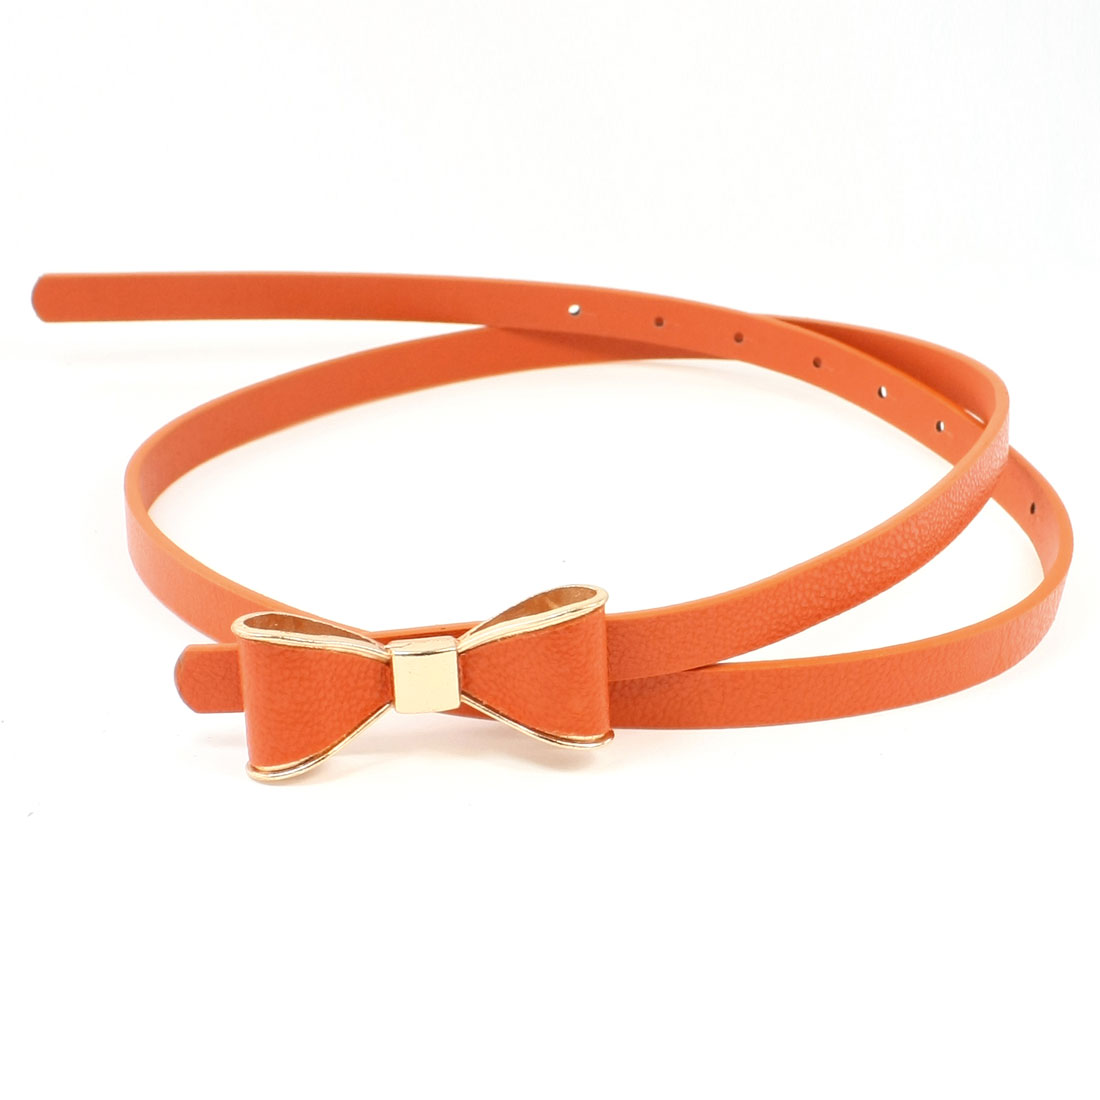 Bow Tie Press Buckle 8 Perforated Holes Faux Leather Belt Orange for Lady